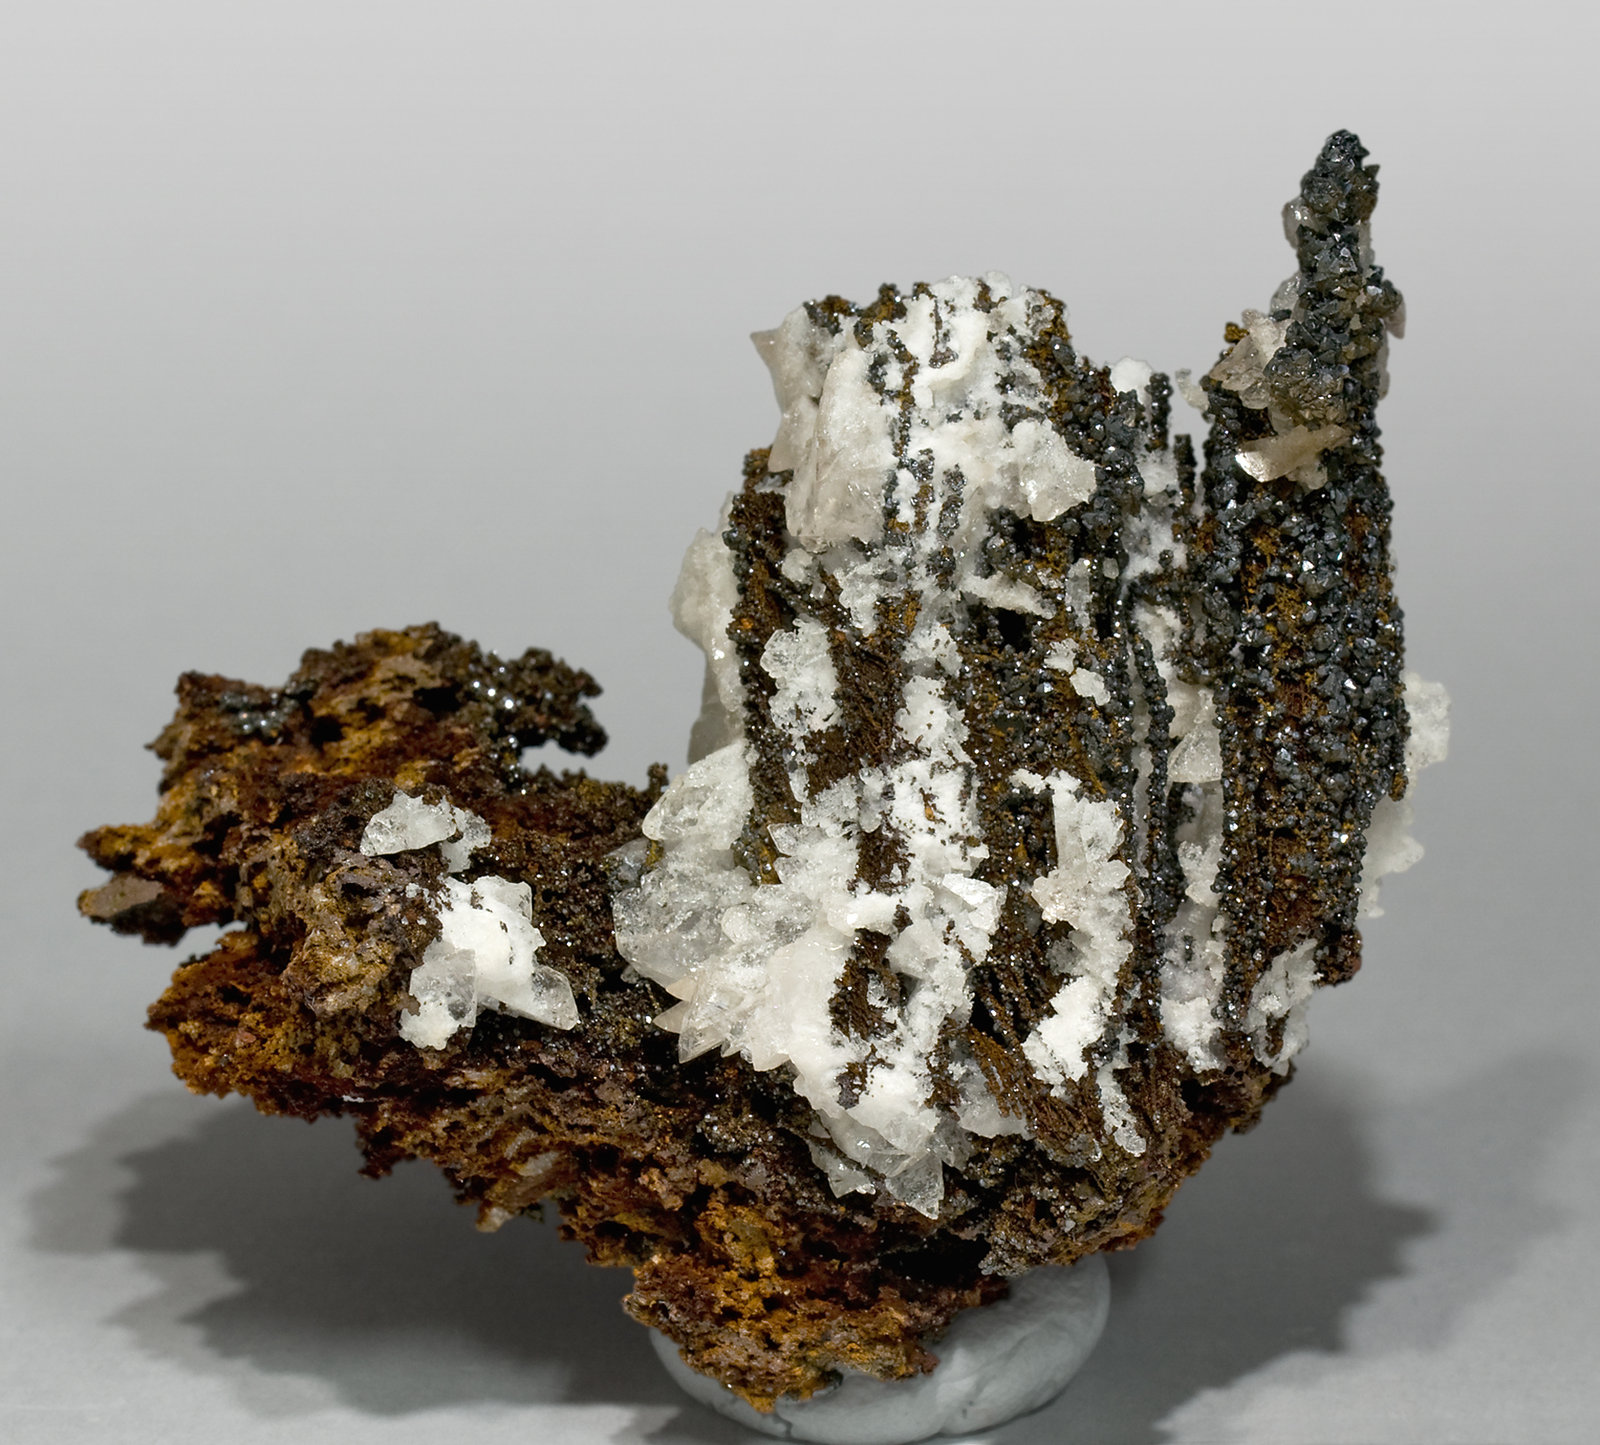 specimens/s_imagesT4/Descloizite-ND26T4f.jpg